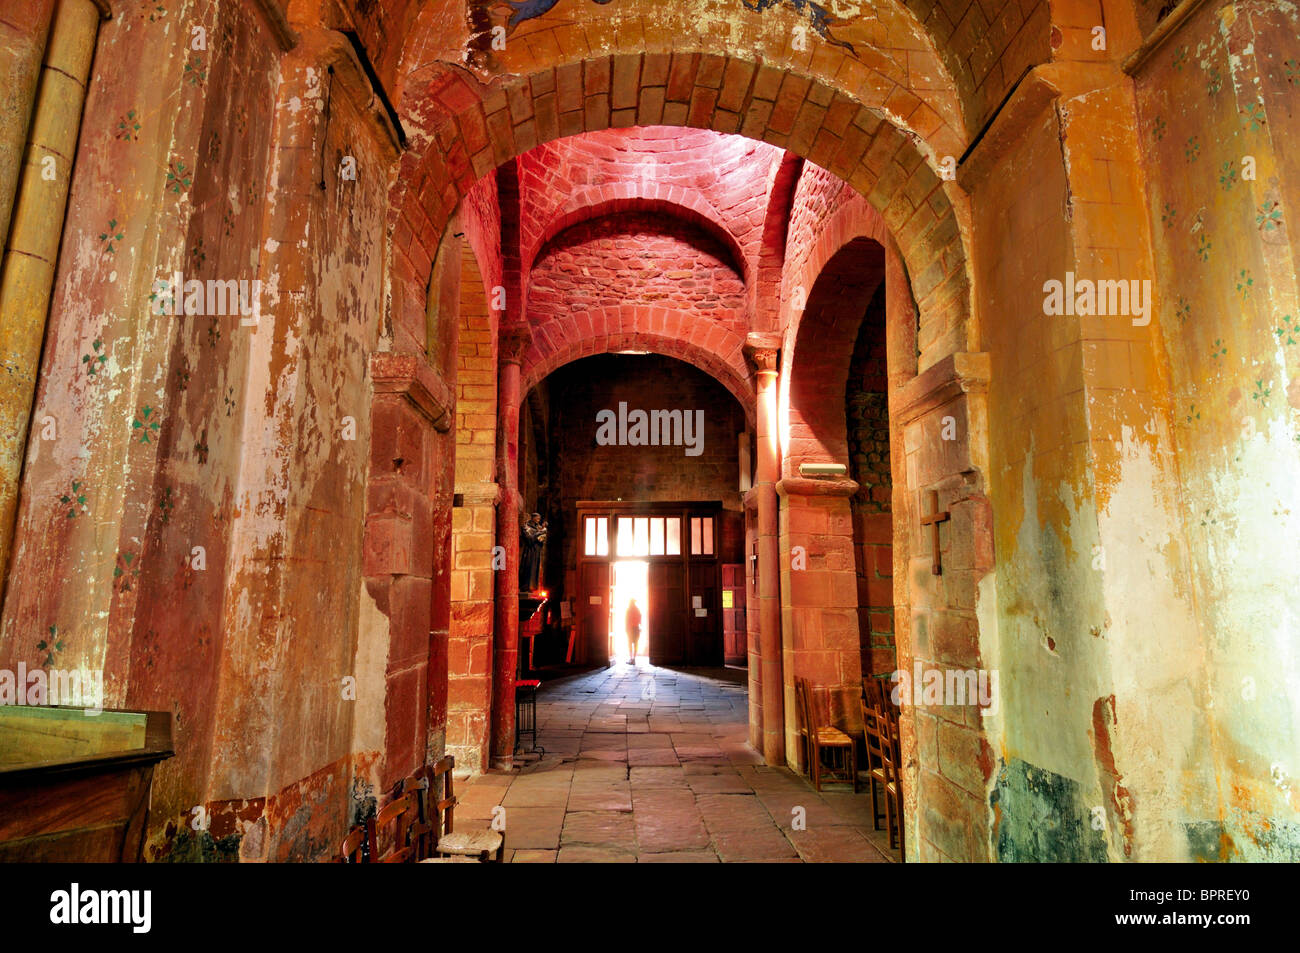 France: Interior of medieval parish church St. Pierre in Collonges-a-Rouge - Stock Image